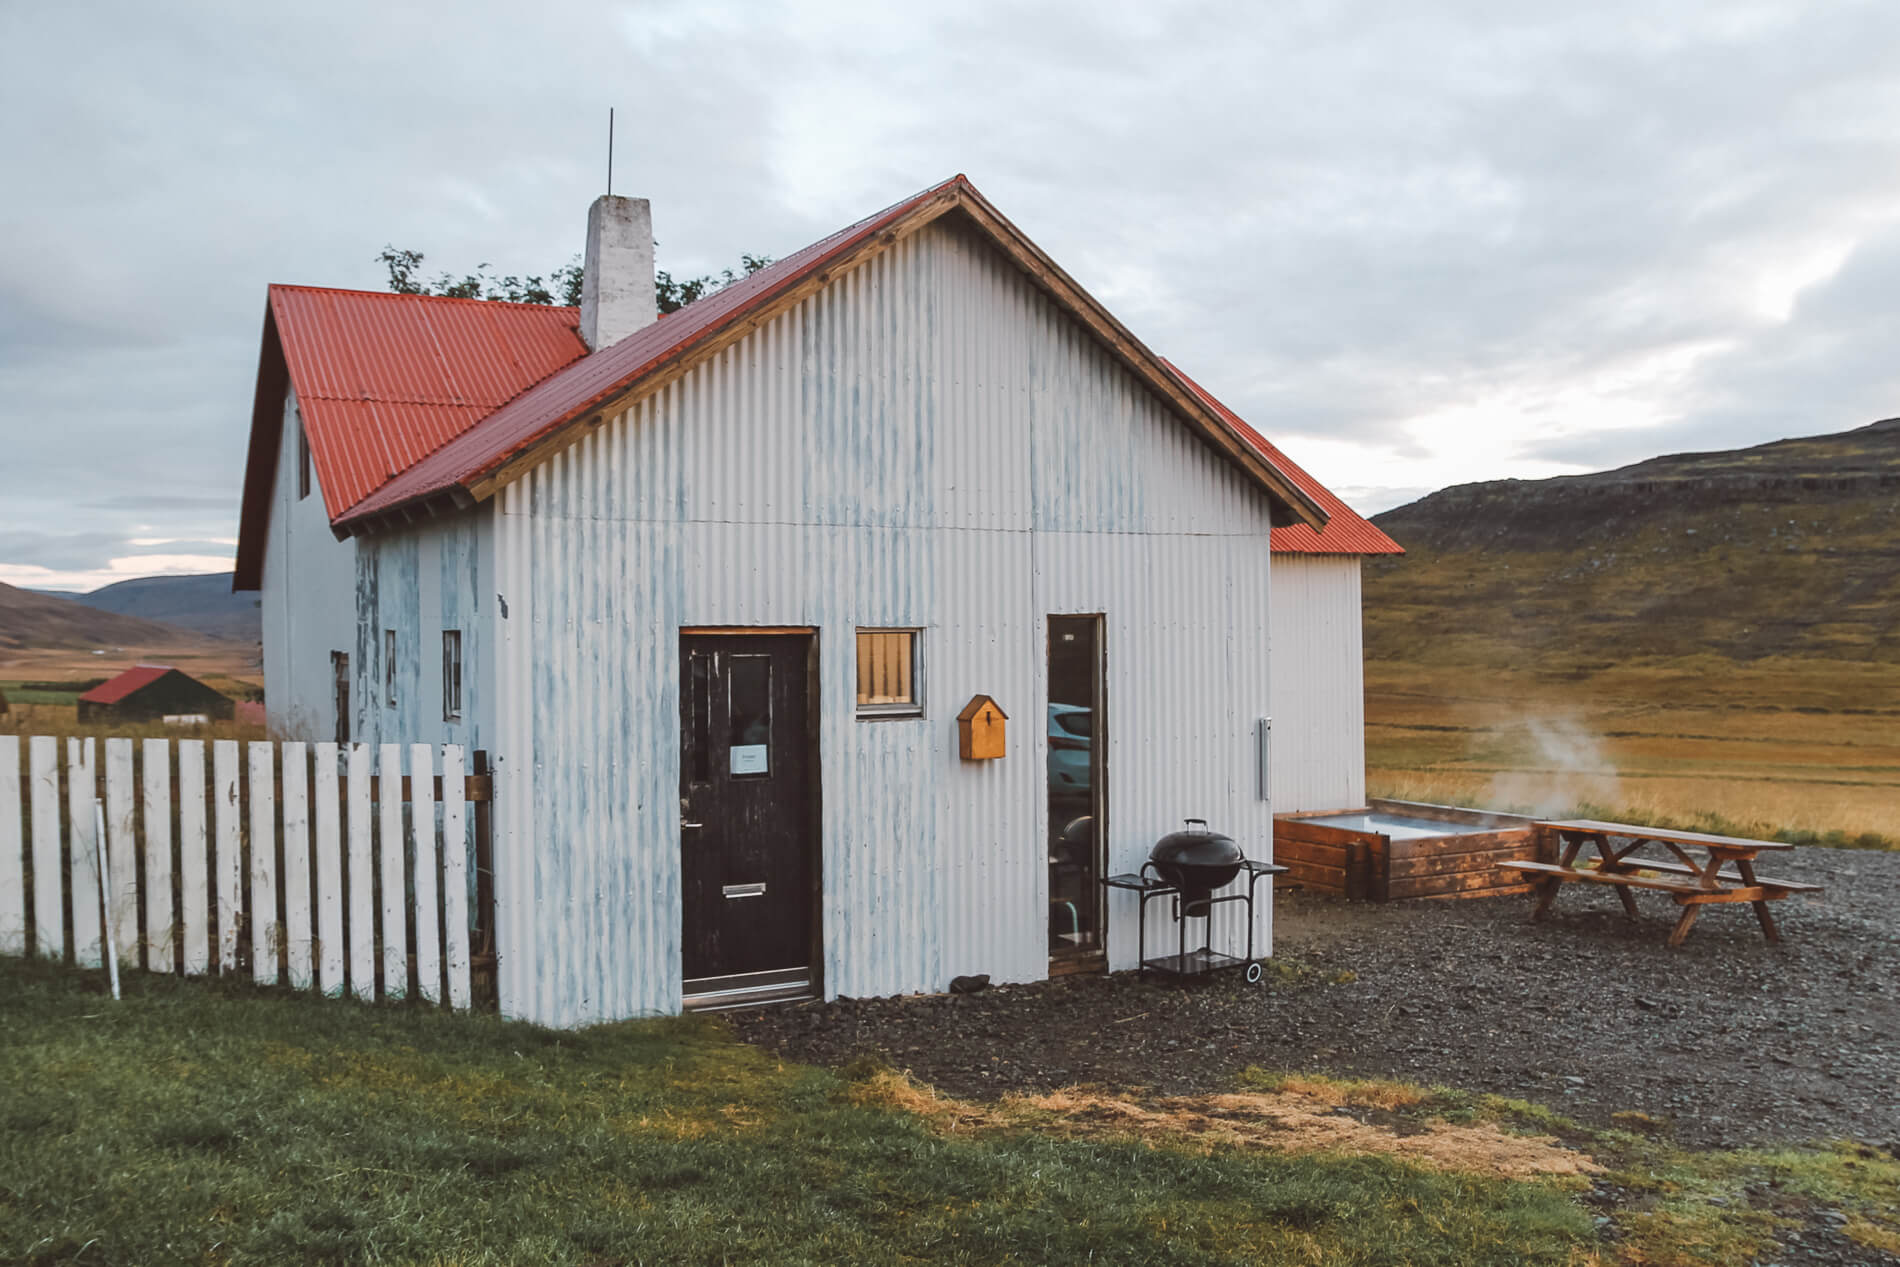 Airbnb farmhouse west Iceland outdoor pool, iceland airbnb, west iceland, iceland itinerary, off the beaten path iceland